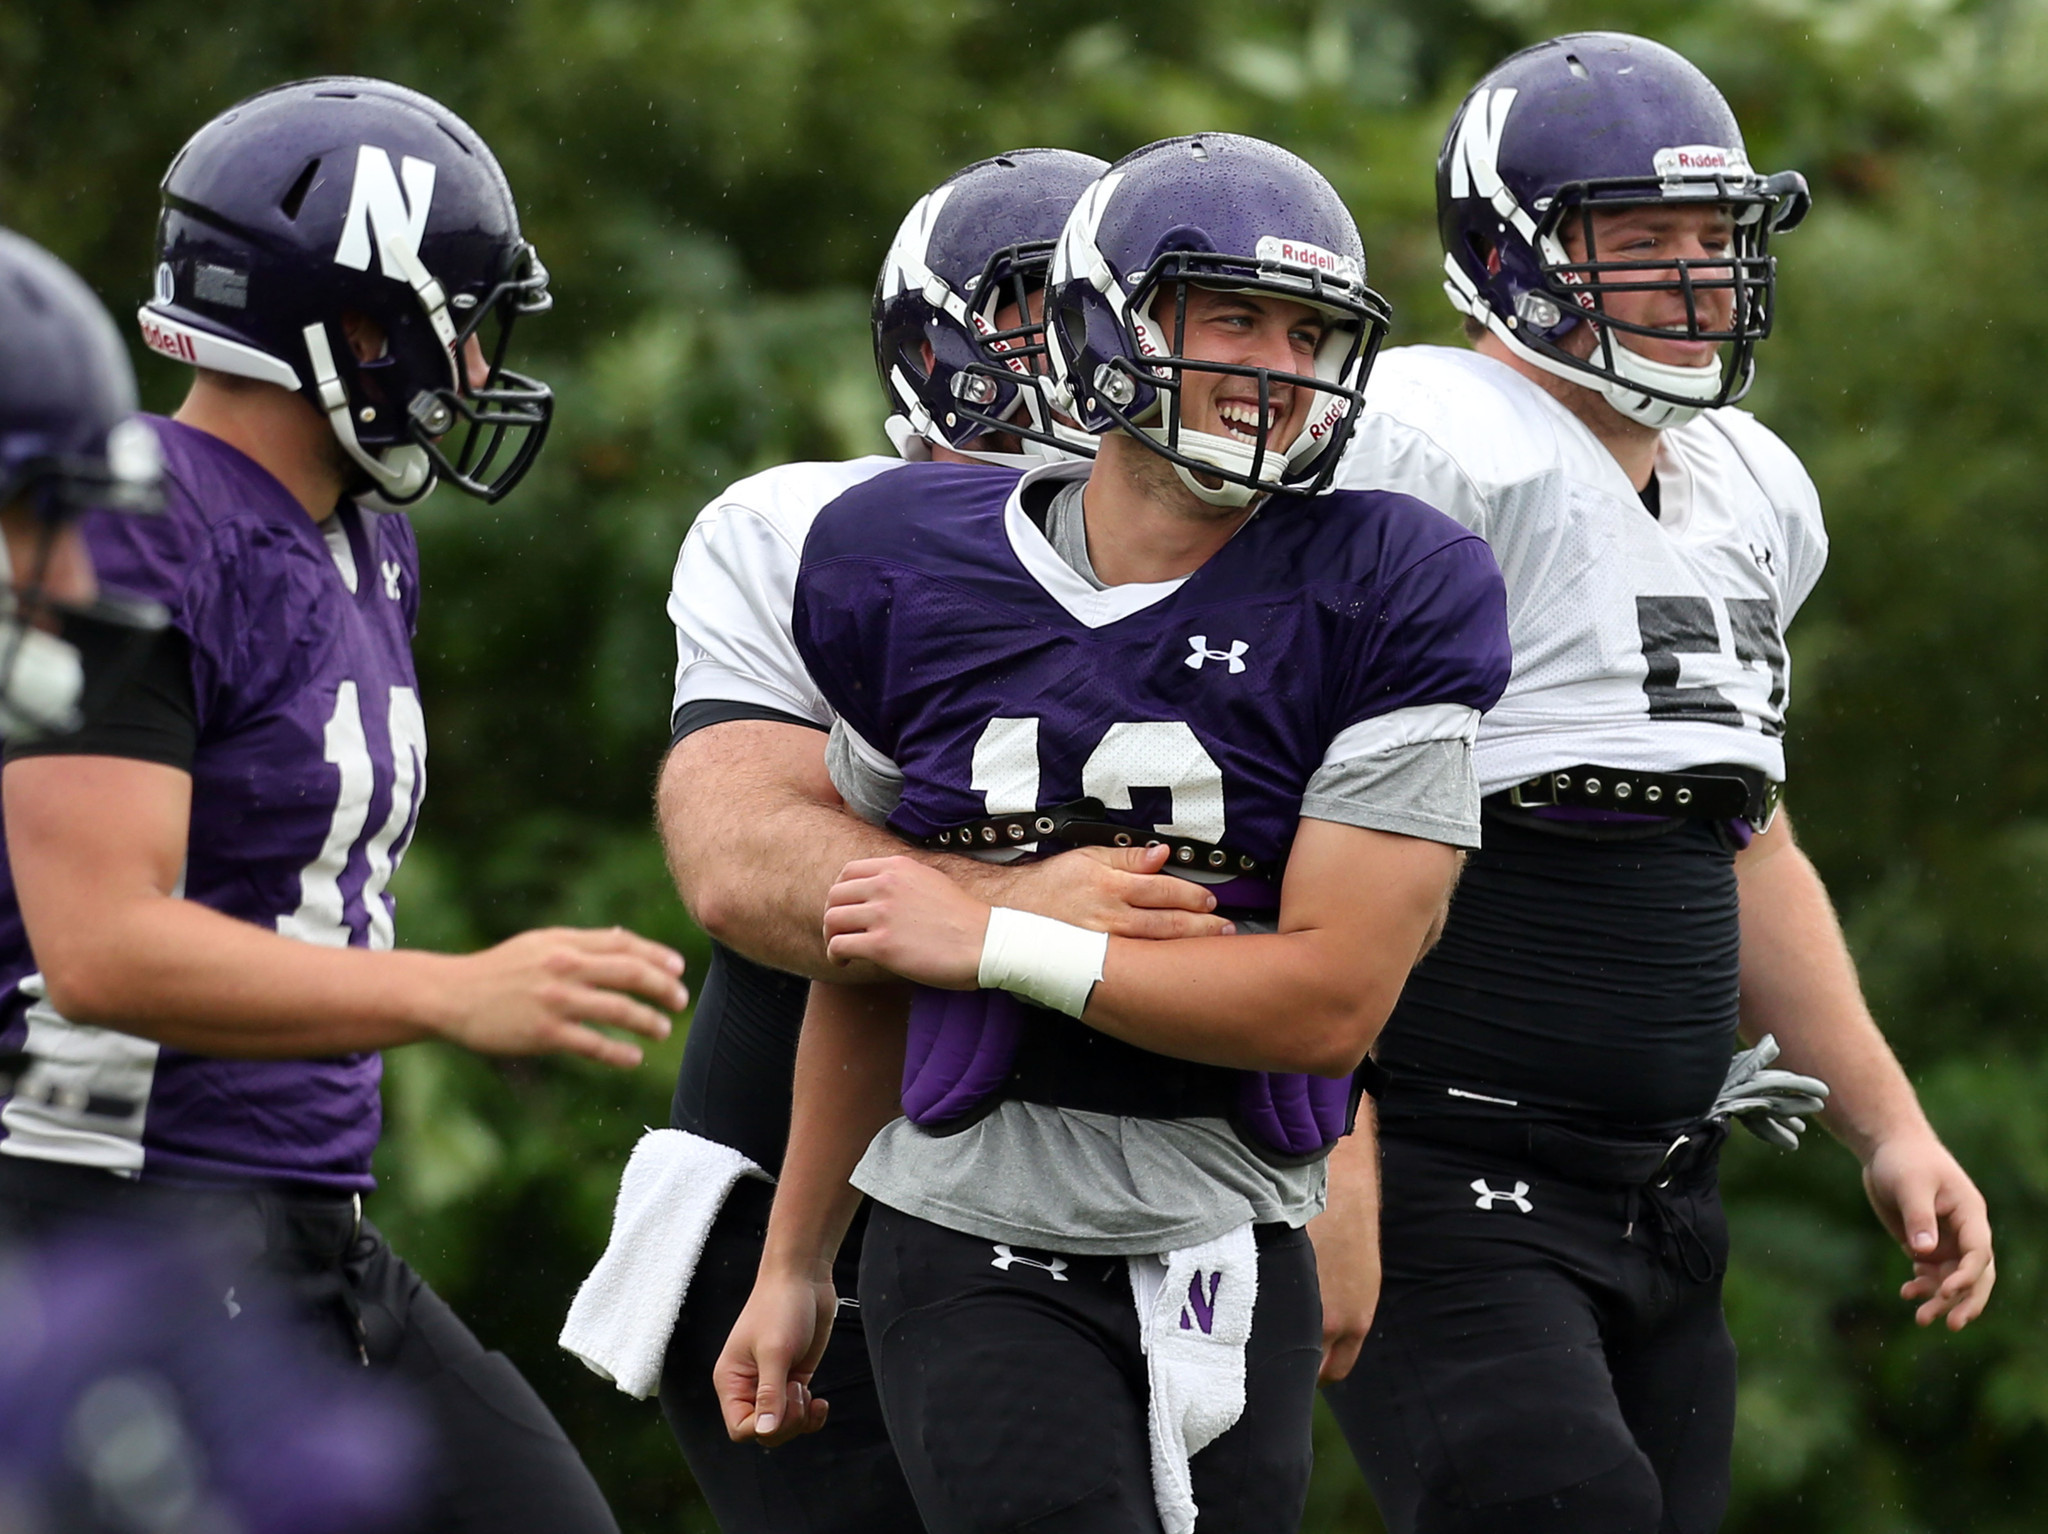 7f36a9a90 Trevor Siemian steps up as Northwestern s leader - Chicago Tribune